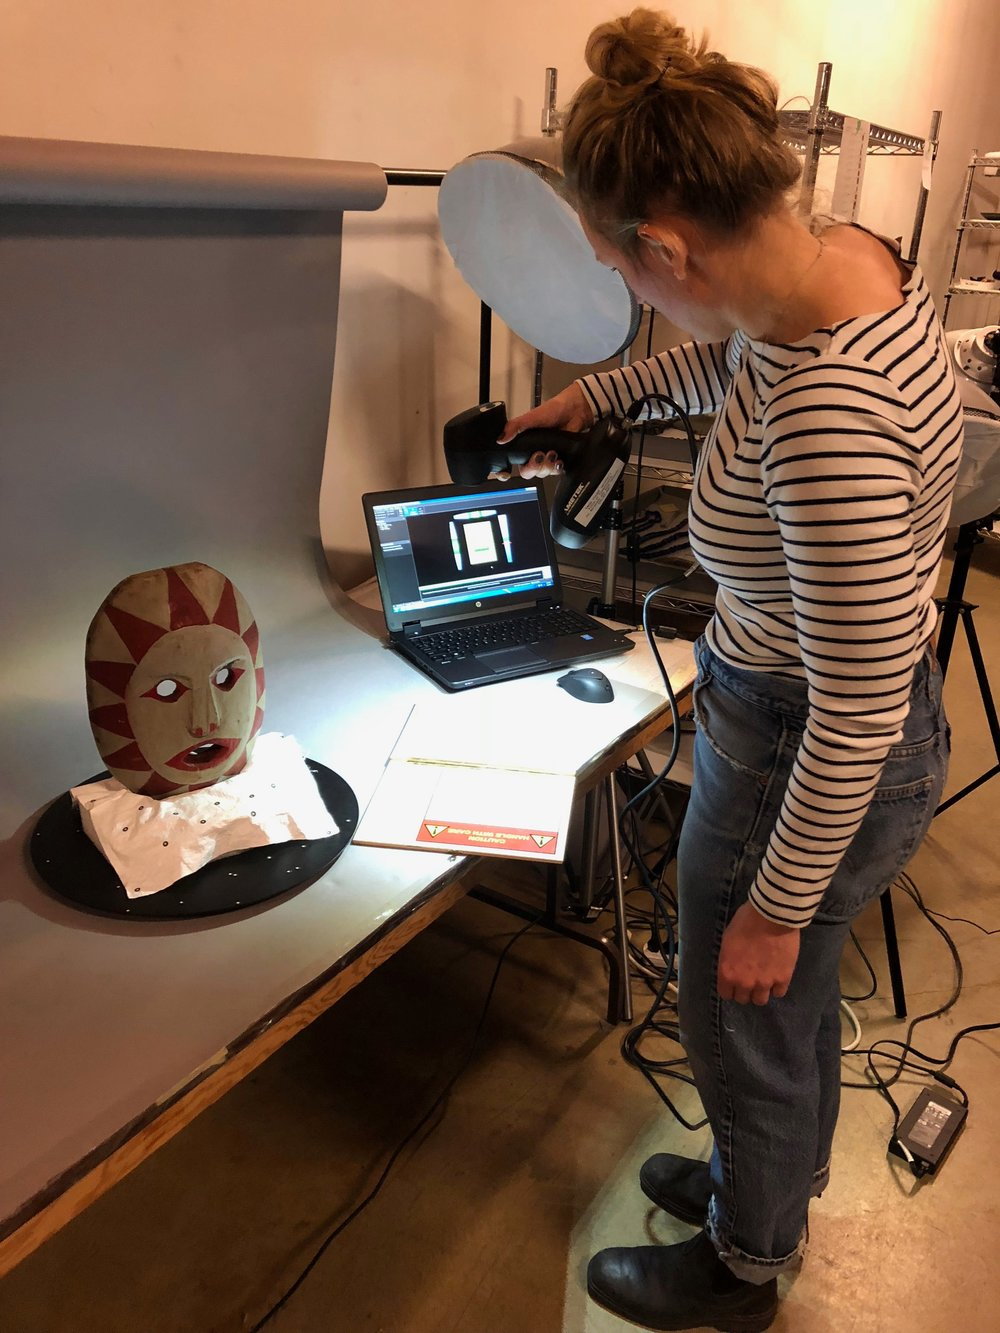 Hannah Turner PHD, wielding the Creaform 3D scanner during our 3rd Upgright scan of the object.